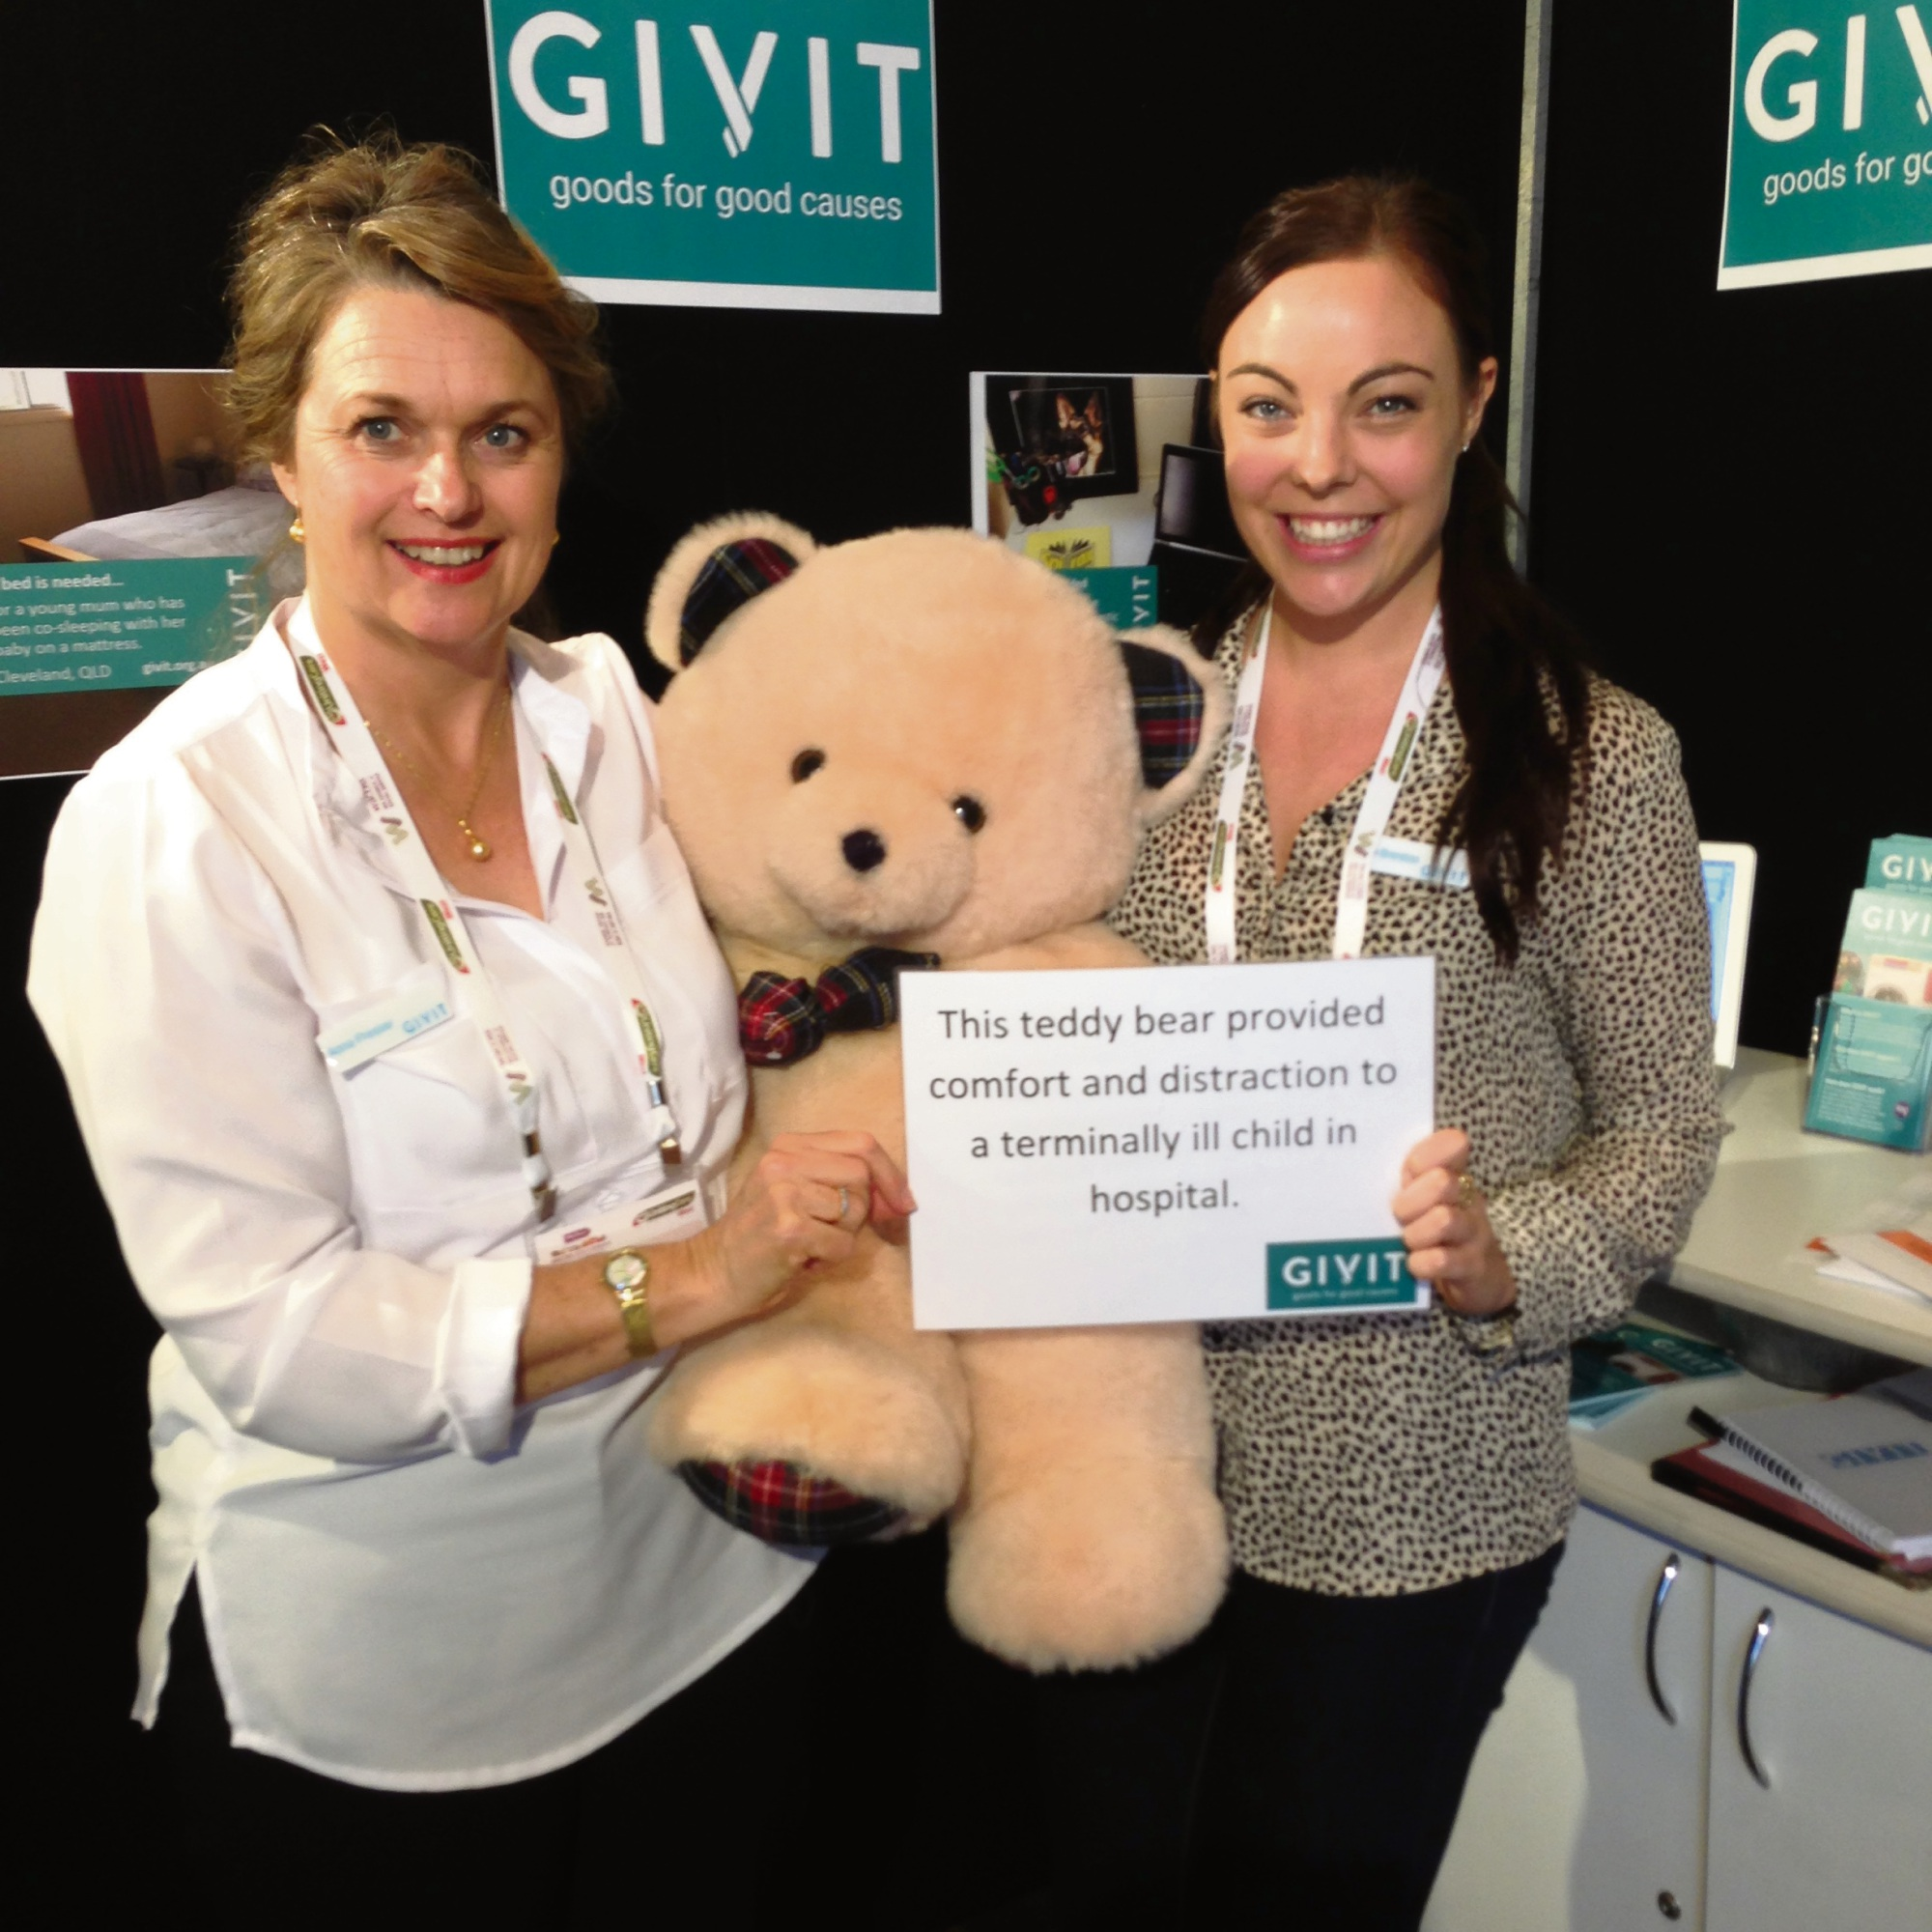 GIVIT's WA state manager Anna Presser (left) and national communications manager Kayla Brereton.